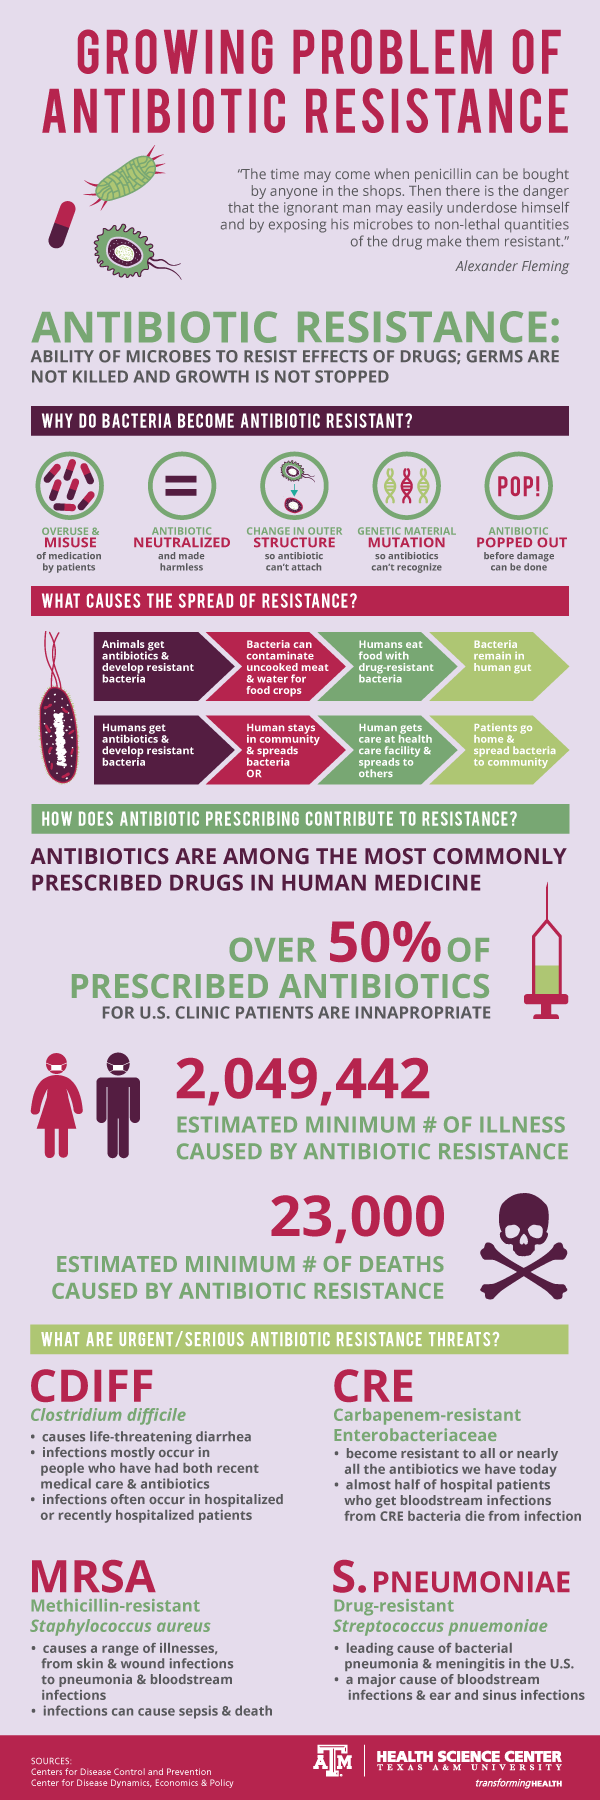 infographic about antibiotic resistance in humans